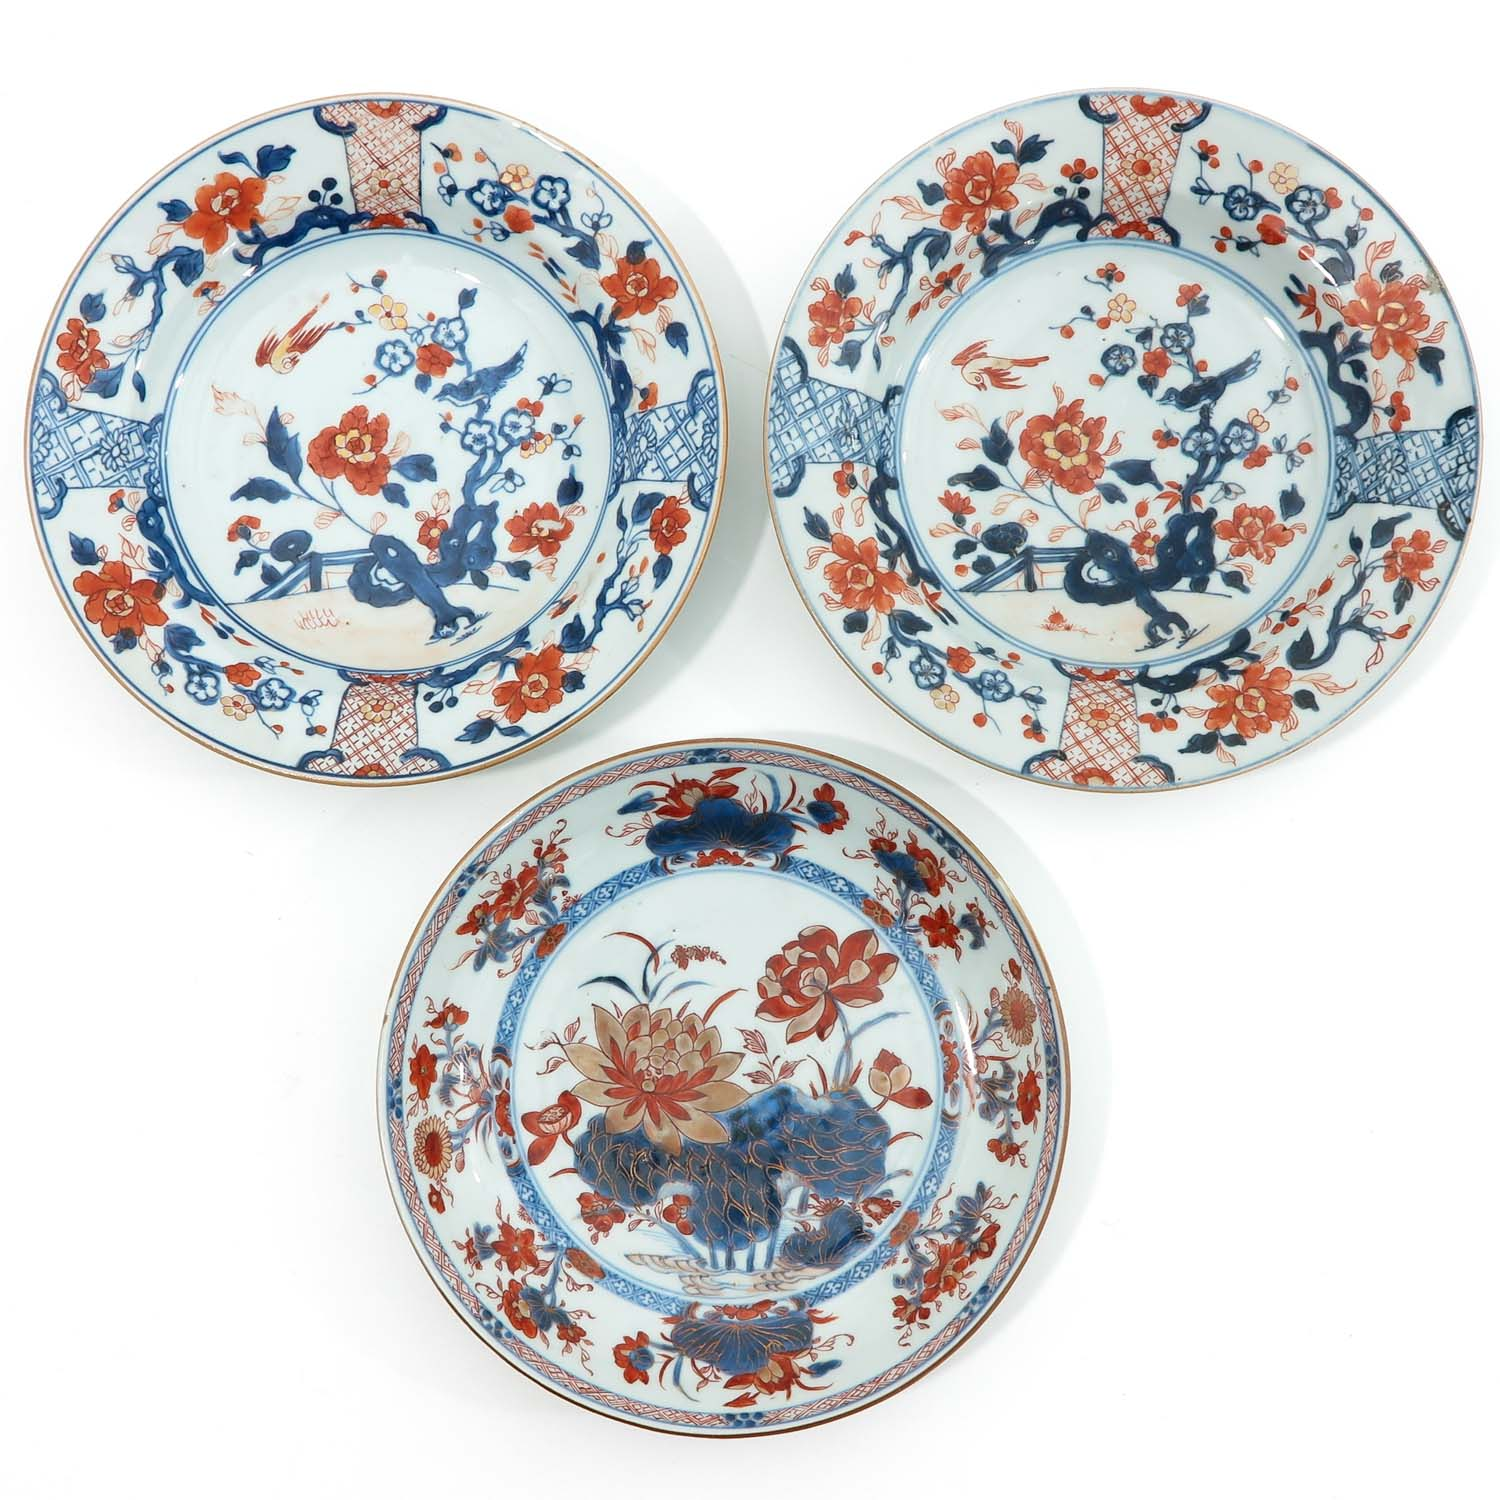 A Collection of 8 Imari Decor Plates - Image 3 of 10